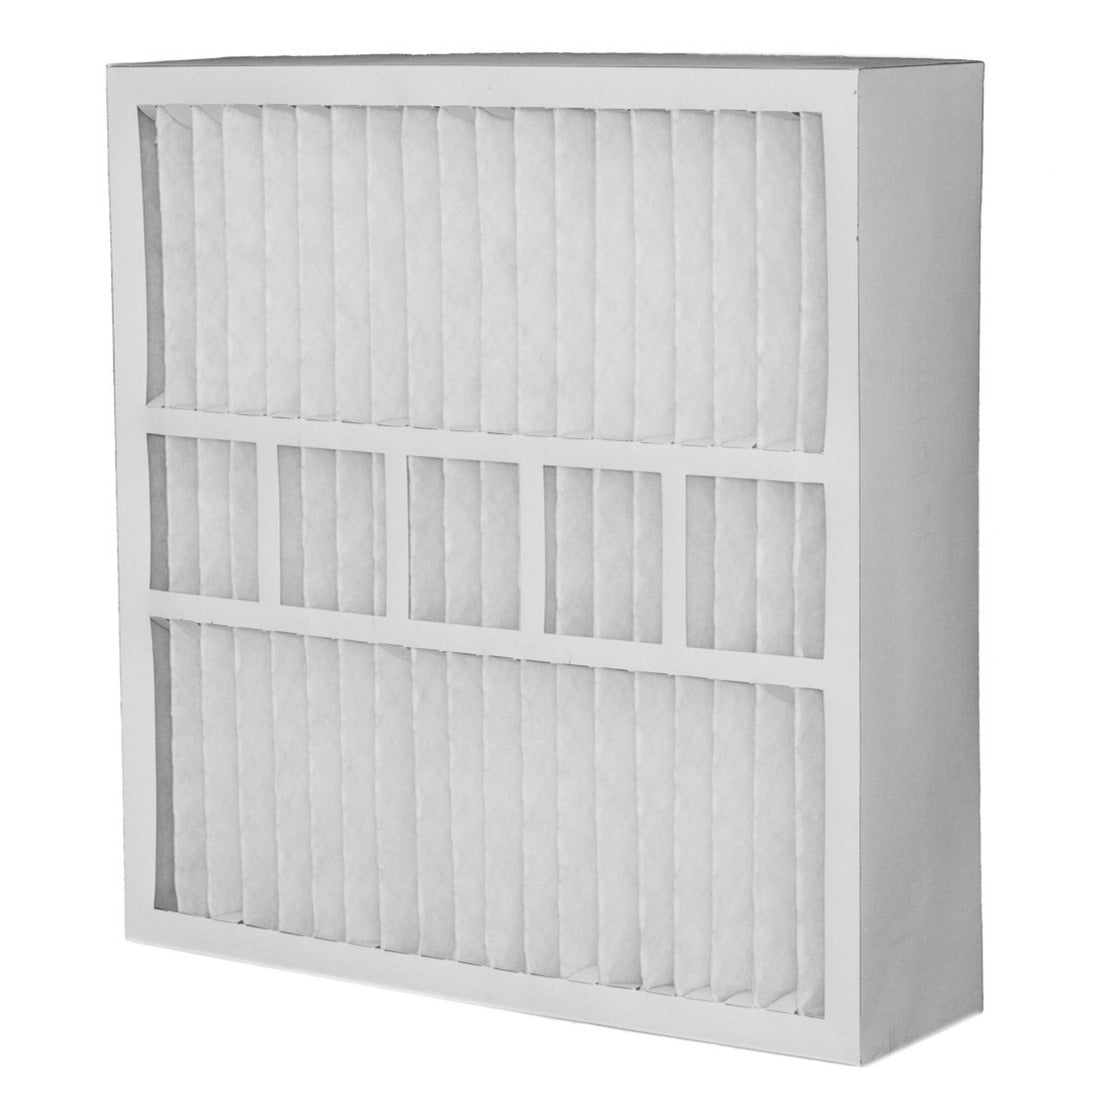 Generic High Efficiency Air Purifier Filter - MERV 11